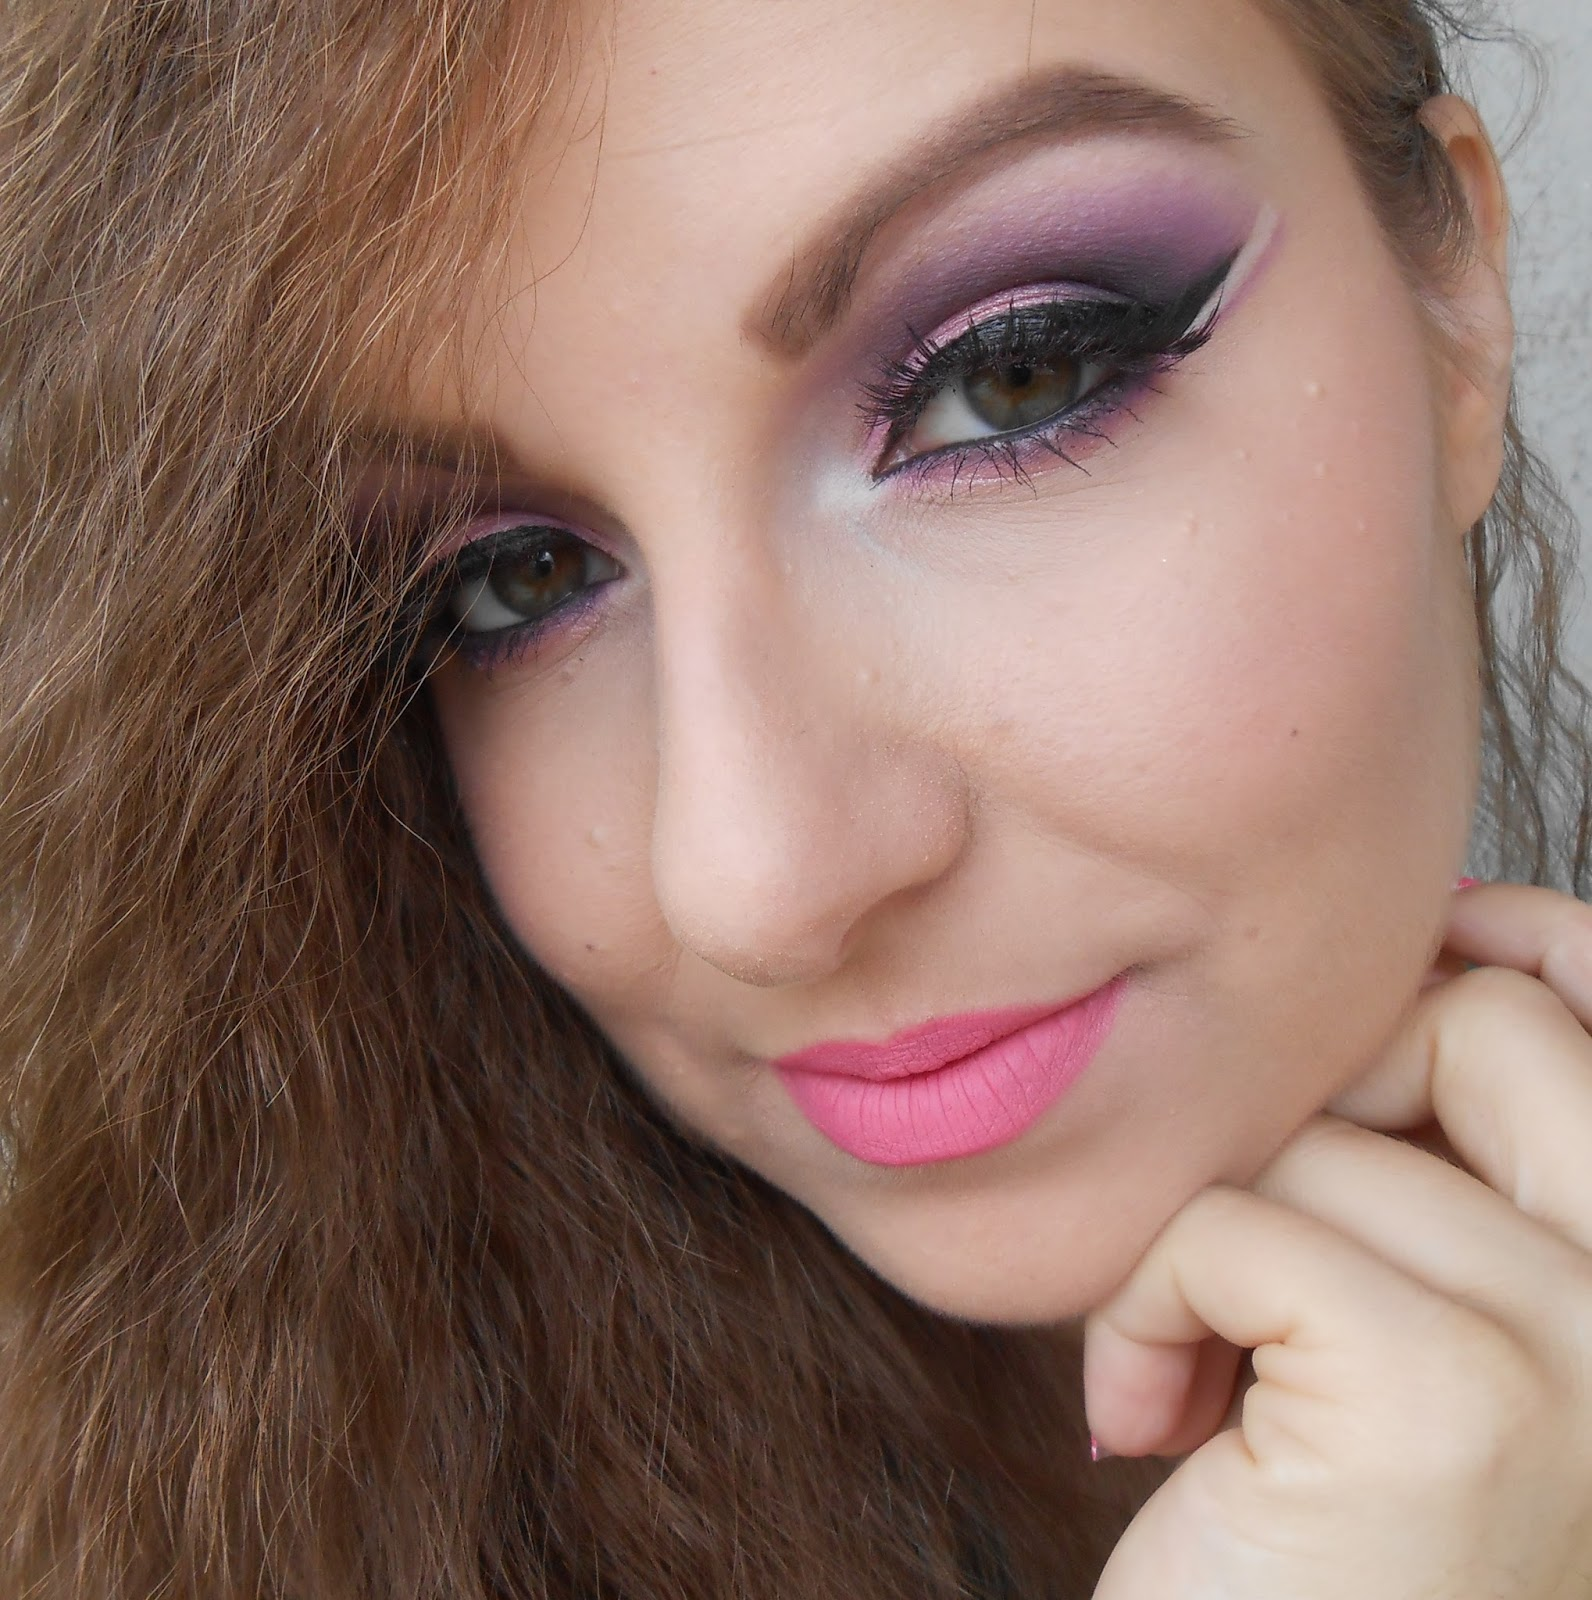 Pinktober: Wearing Pink Makeup and Nails - Beauty of the suns